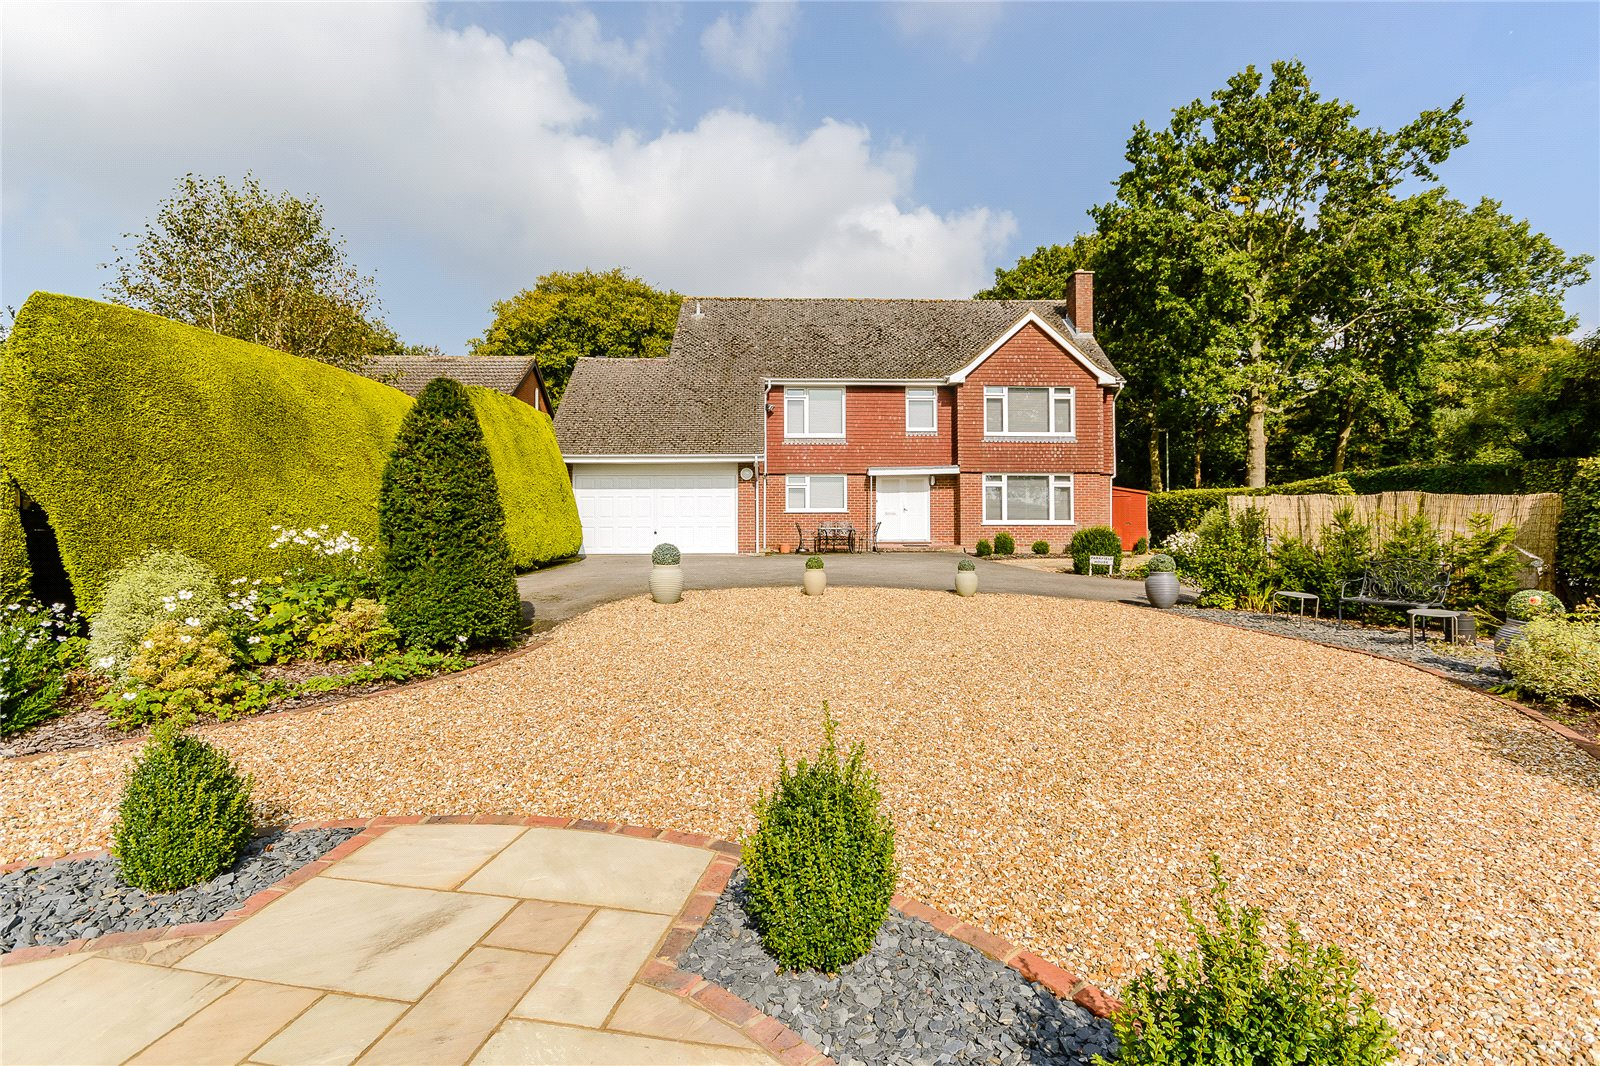 Single Family Home For Sale At Upper Old Park Lane Farnham Surrey GU9